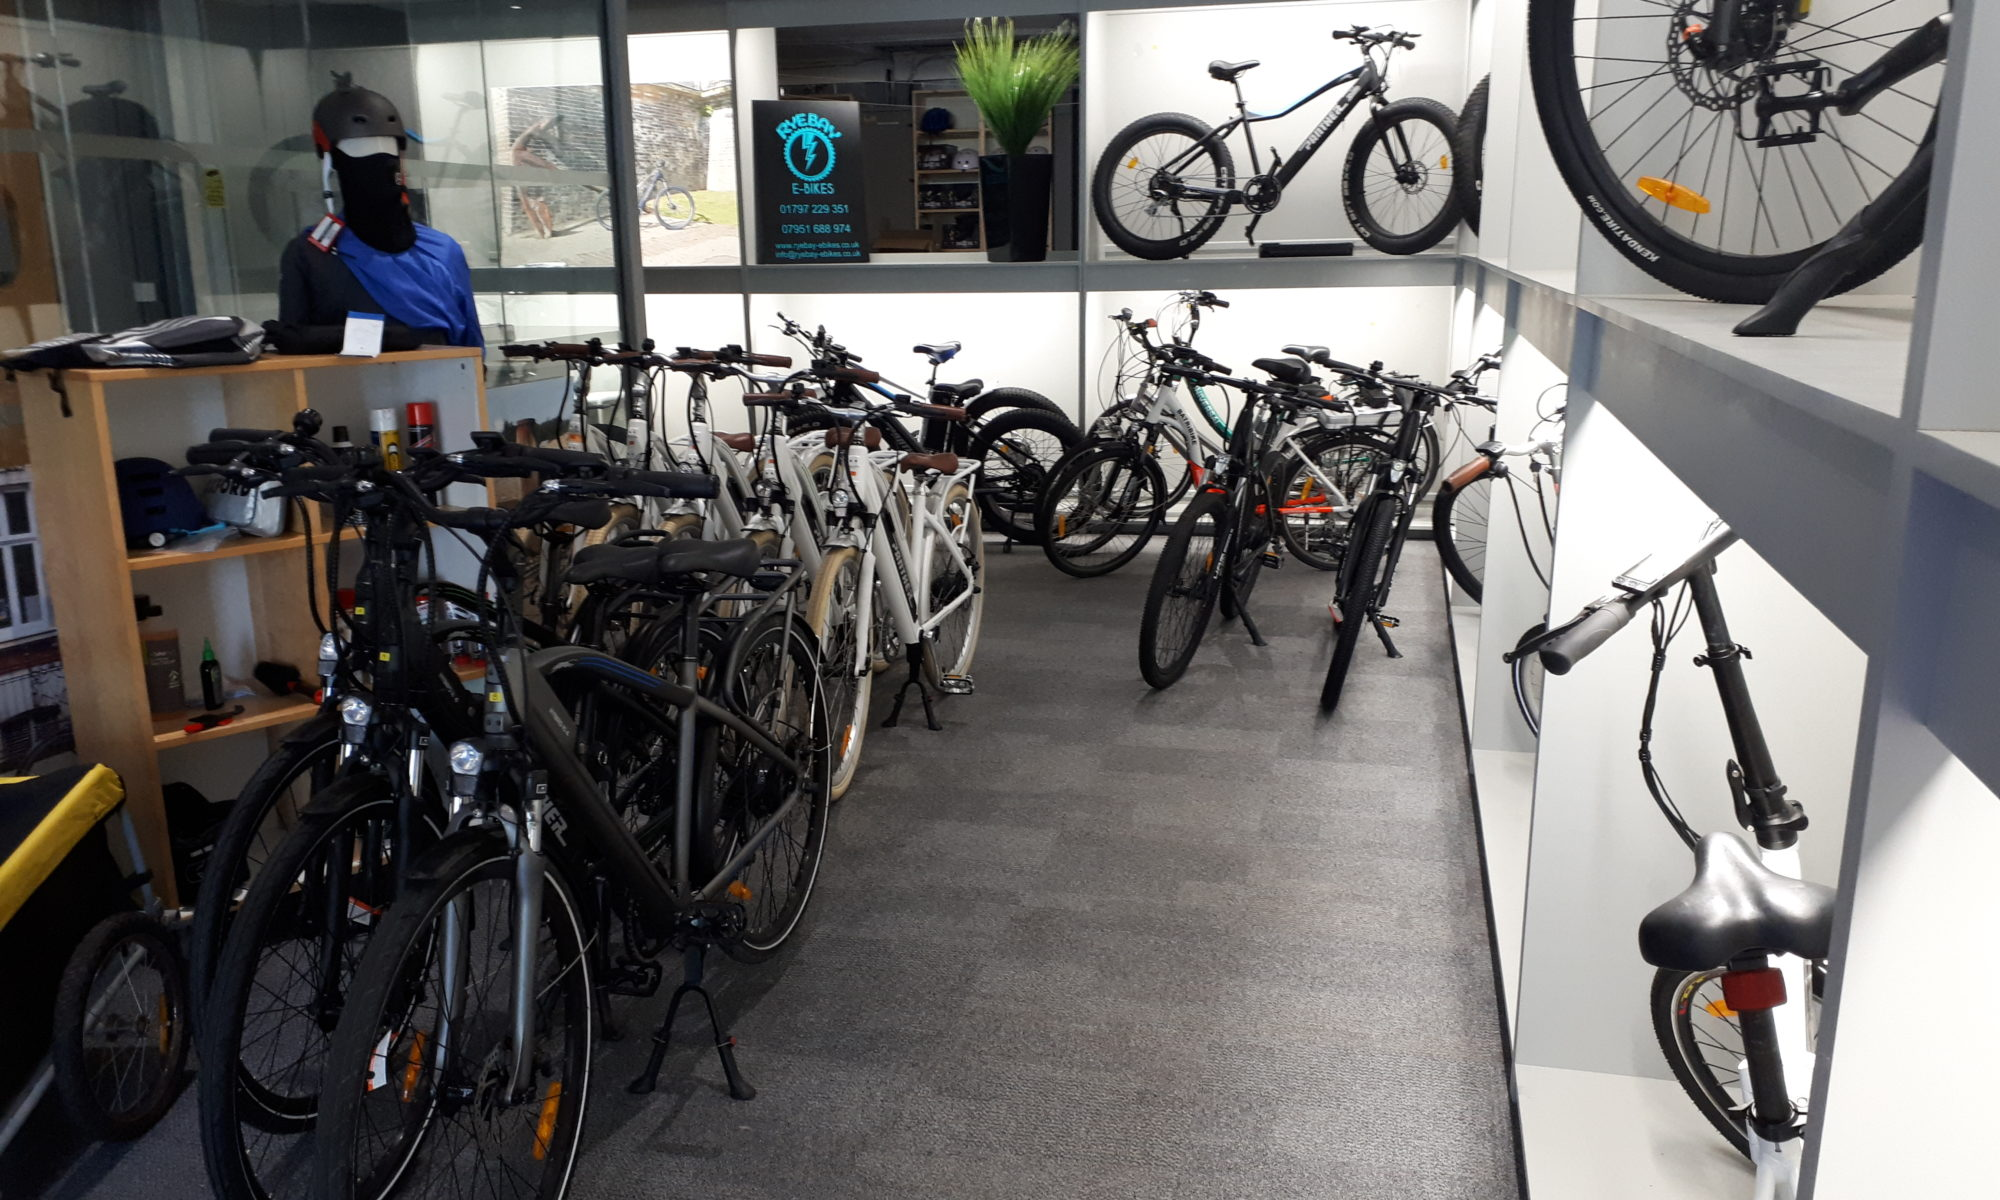 Rye Bay e-bike hire shop